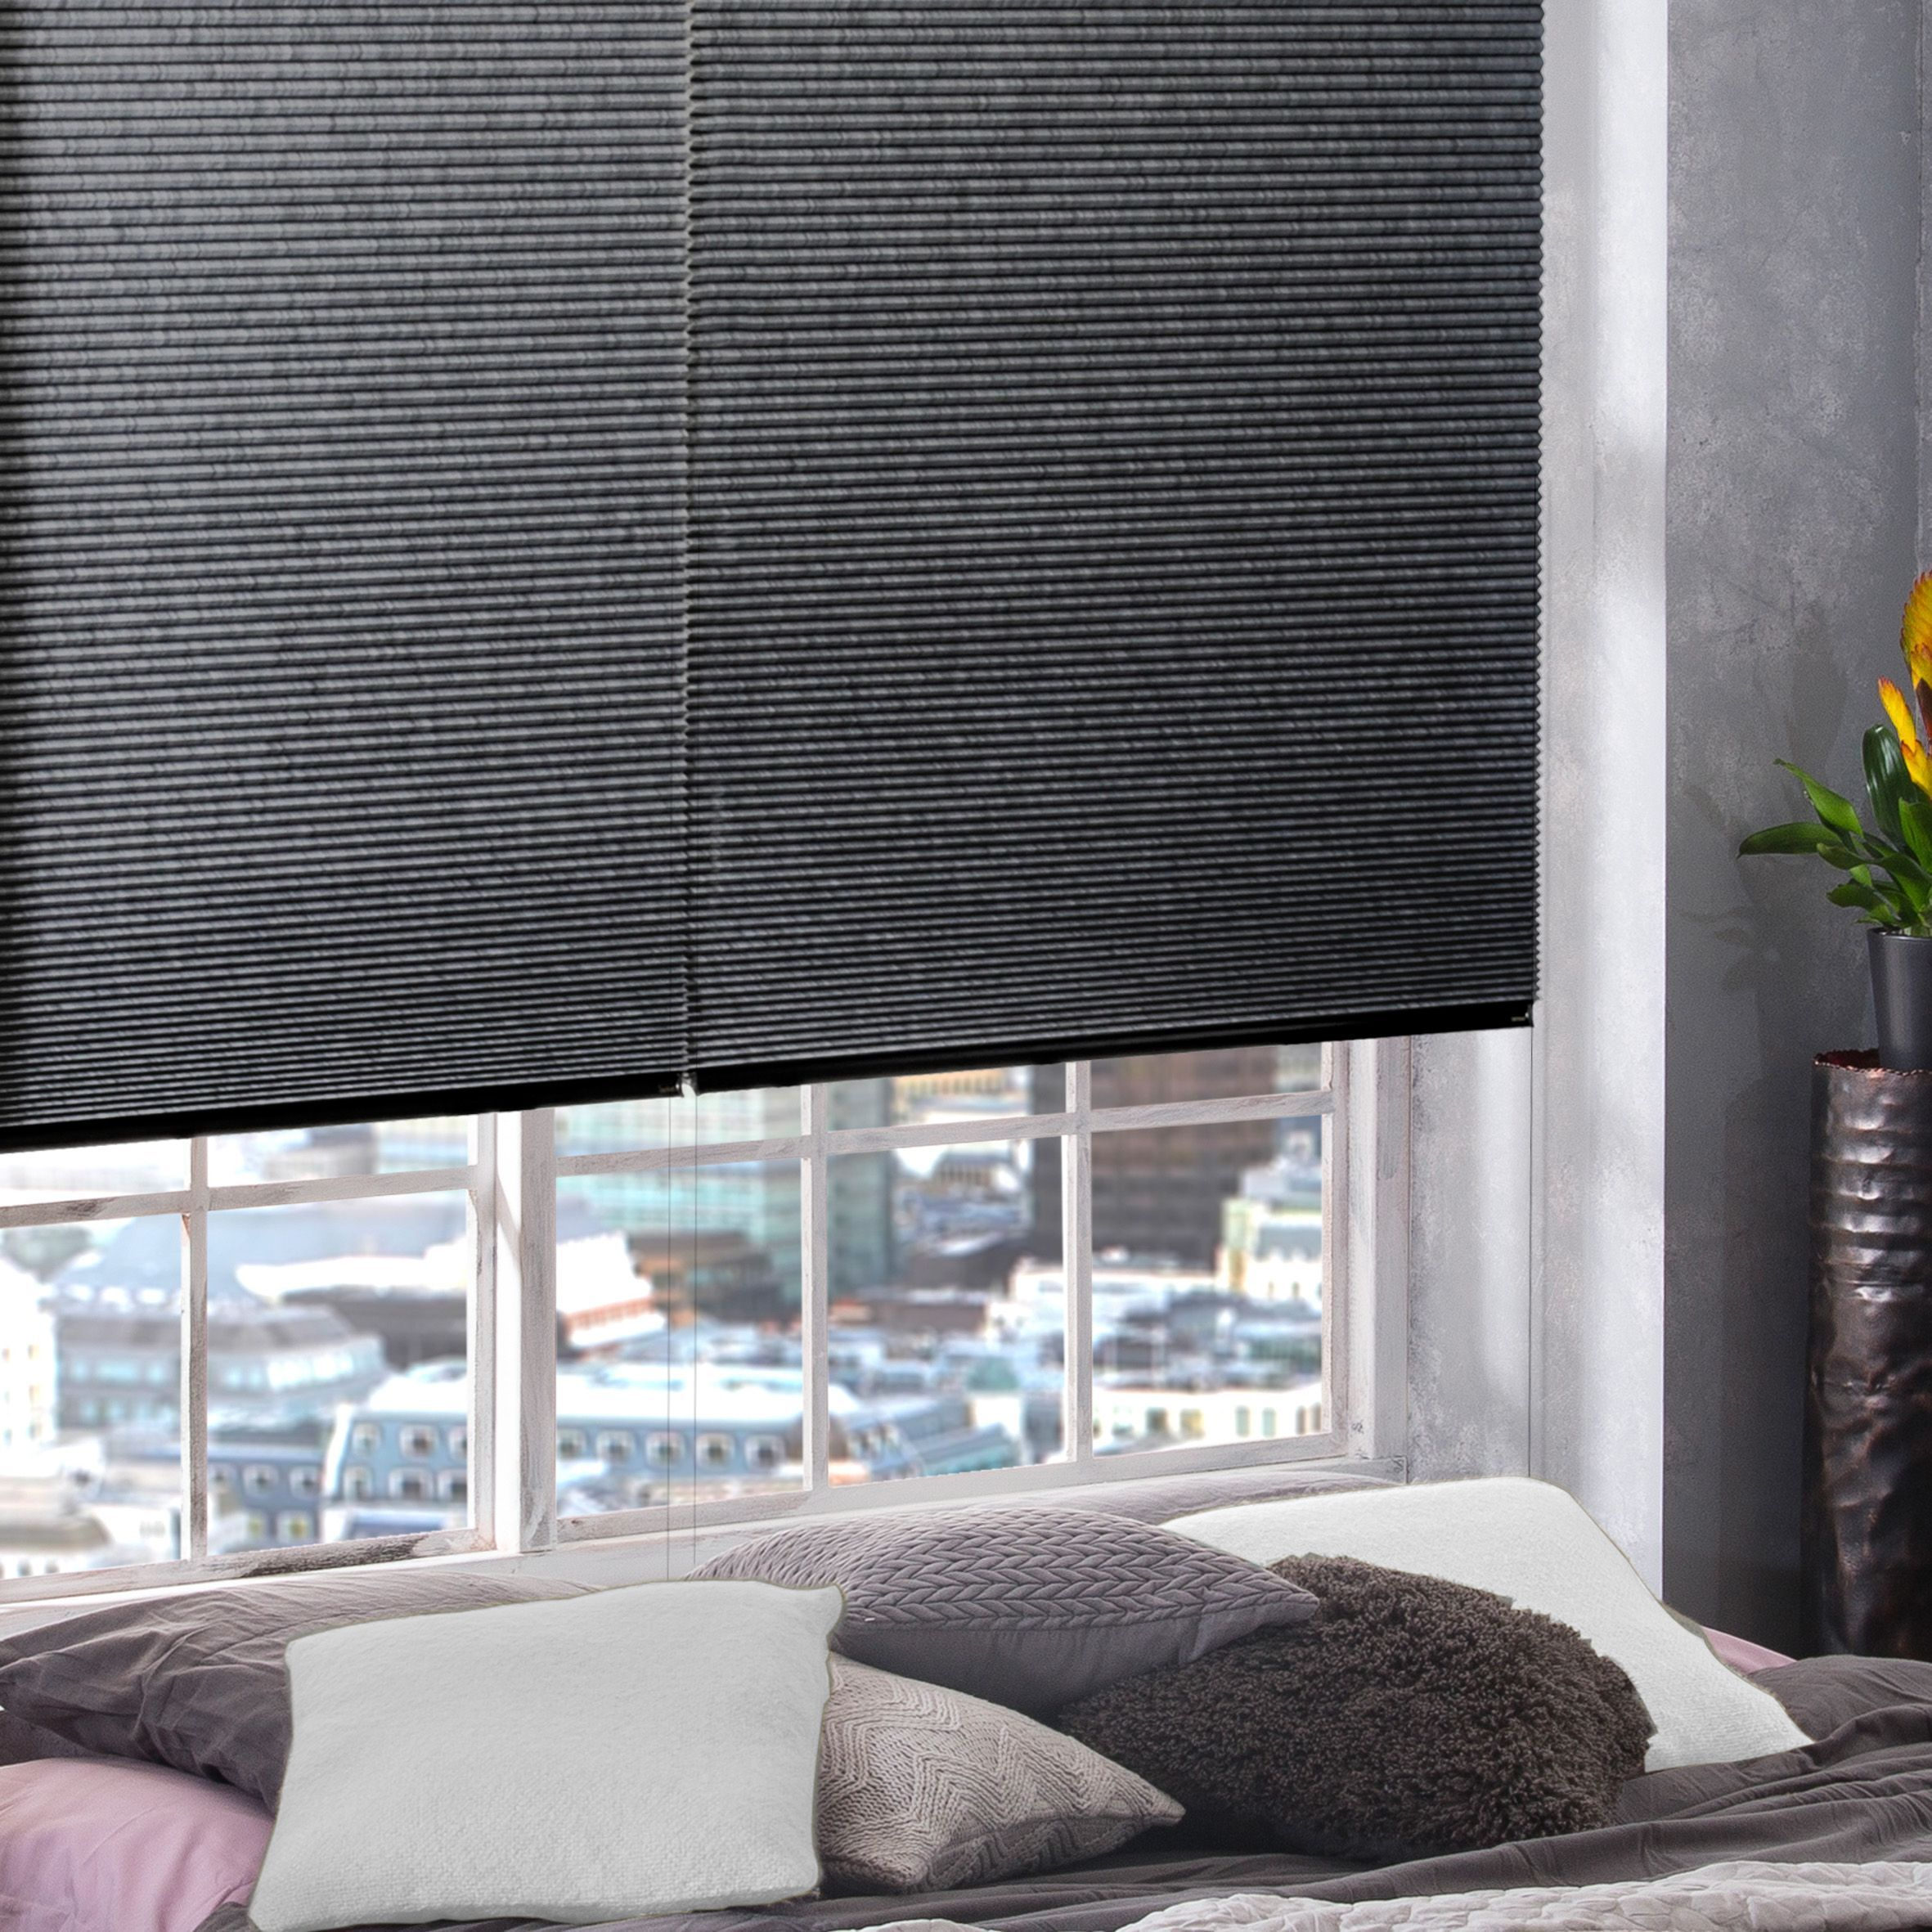 Hive Blinds From Style Studio Best Blinds For Summer Contemporary Charcoal Grey Colour Inspir Living Room Blinds Ikea Living Room Blinds Curtains With Blinds